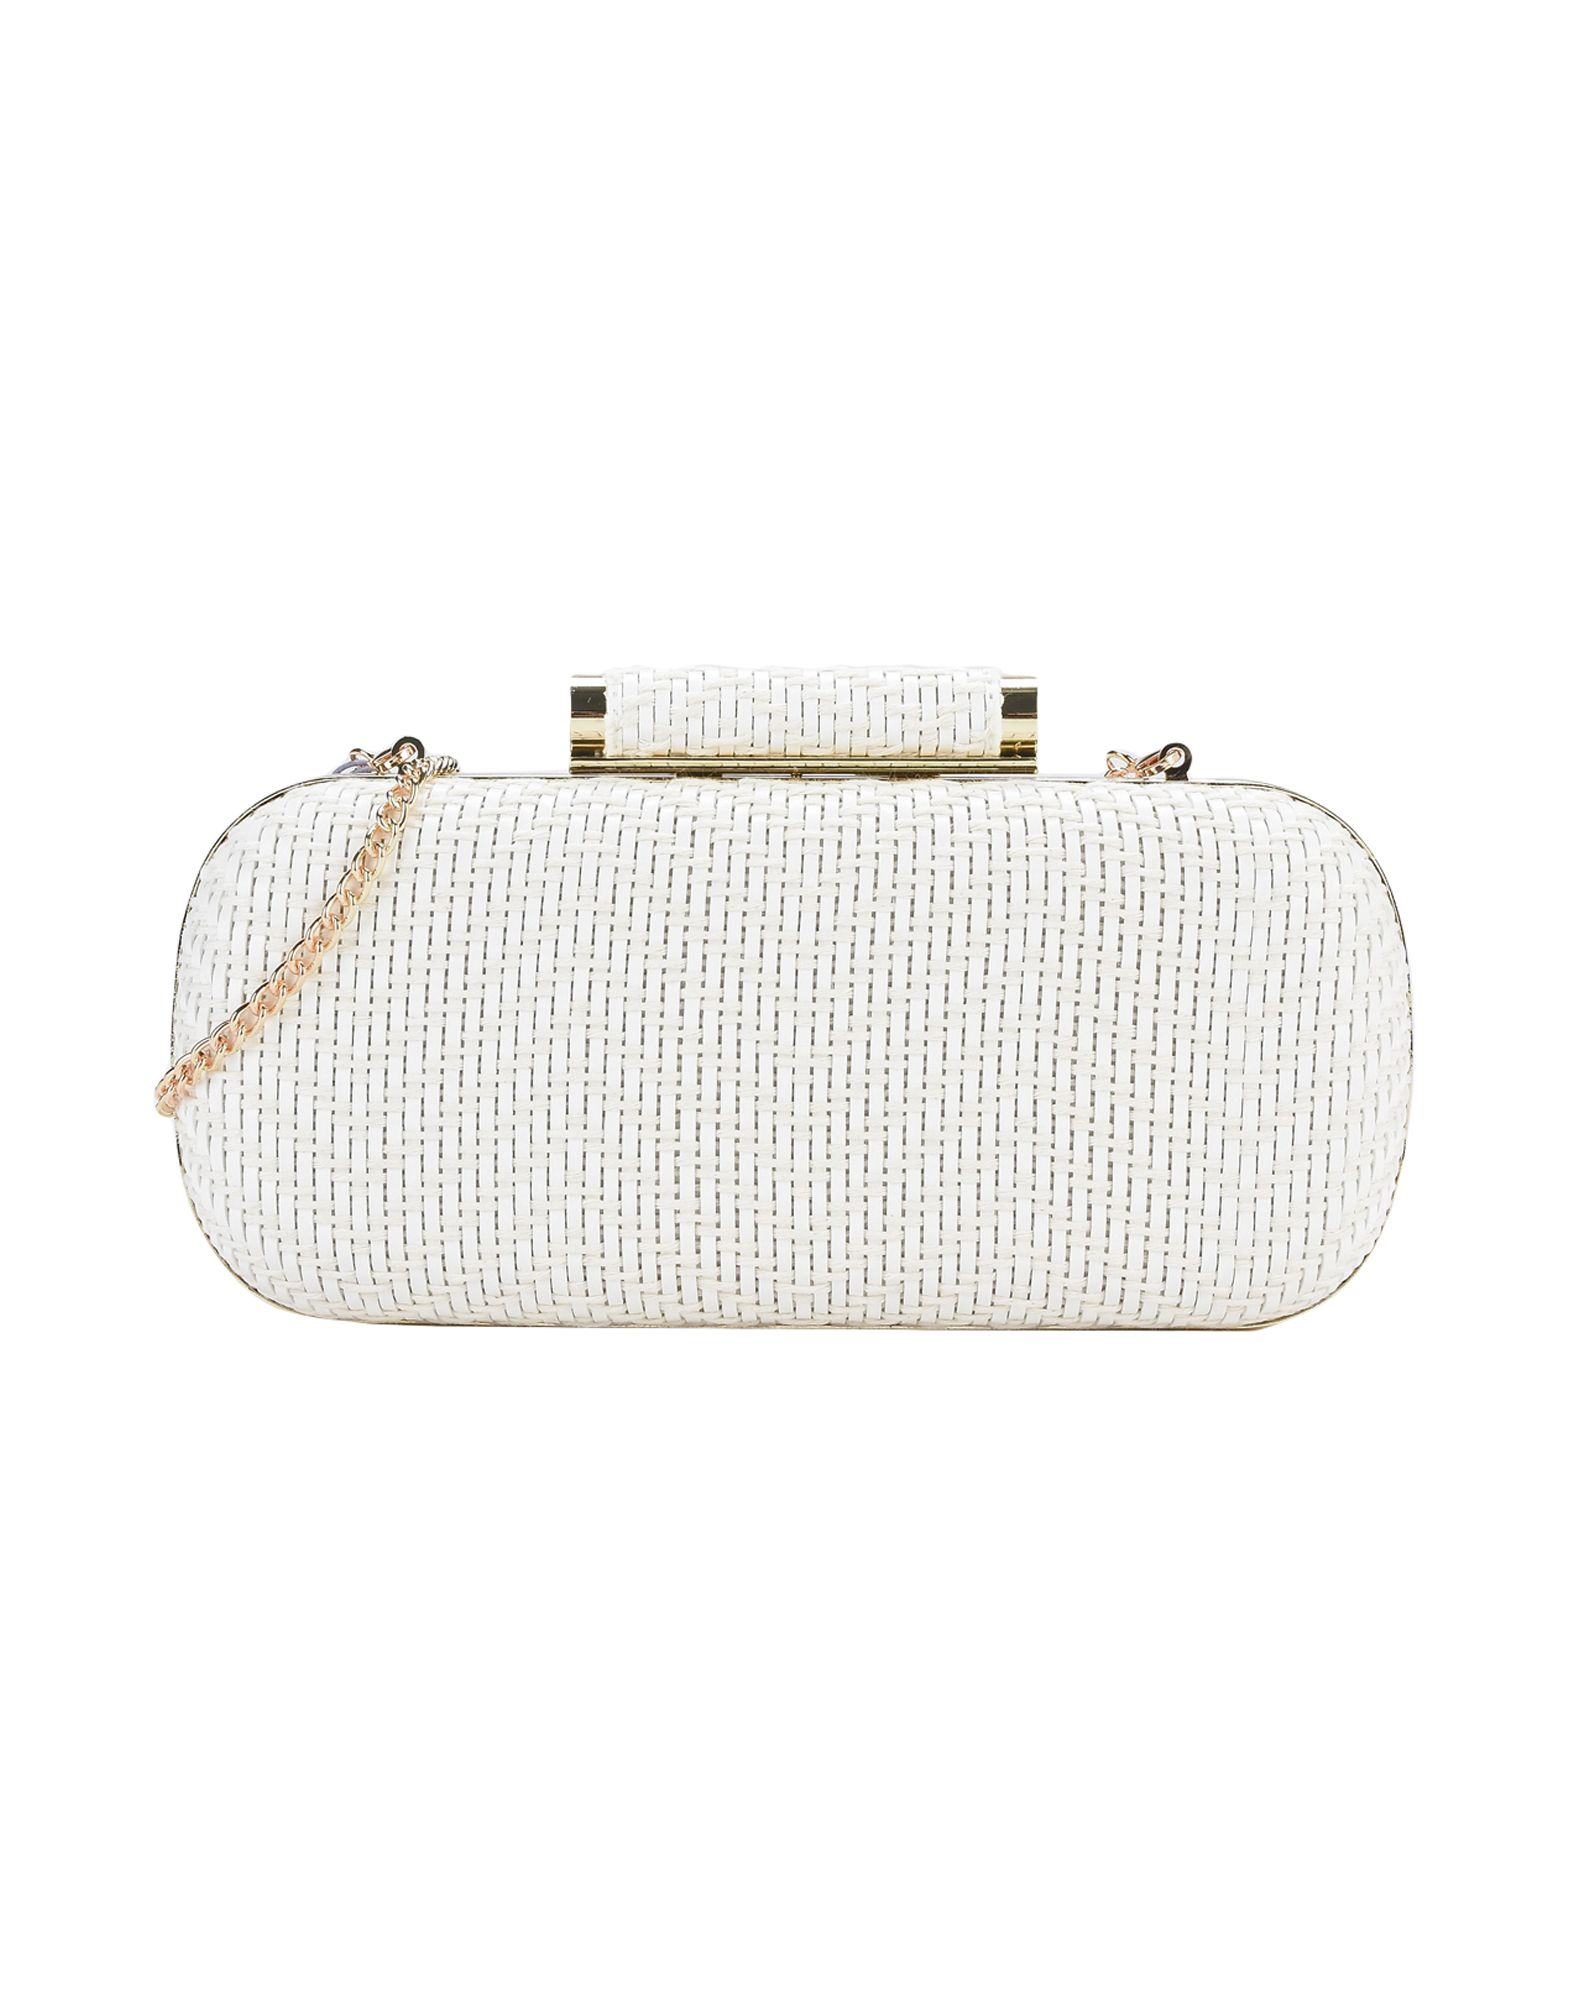 INGE CHRISTOPHER Handbag in White